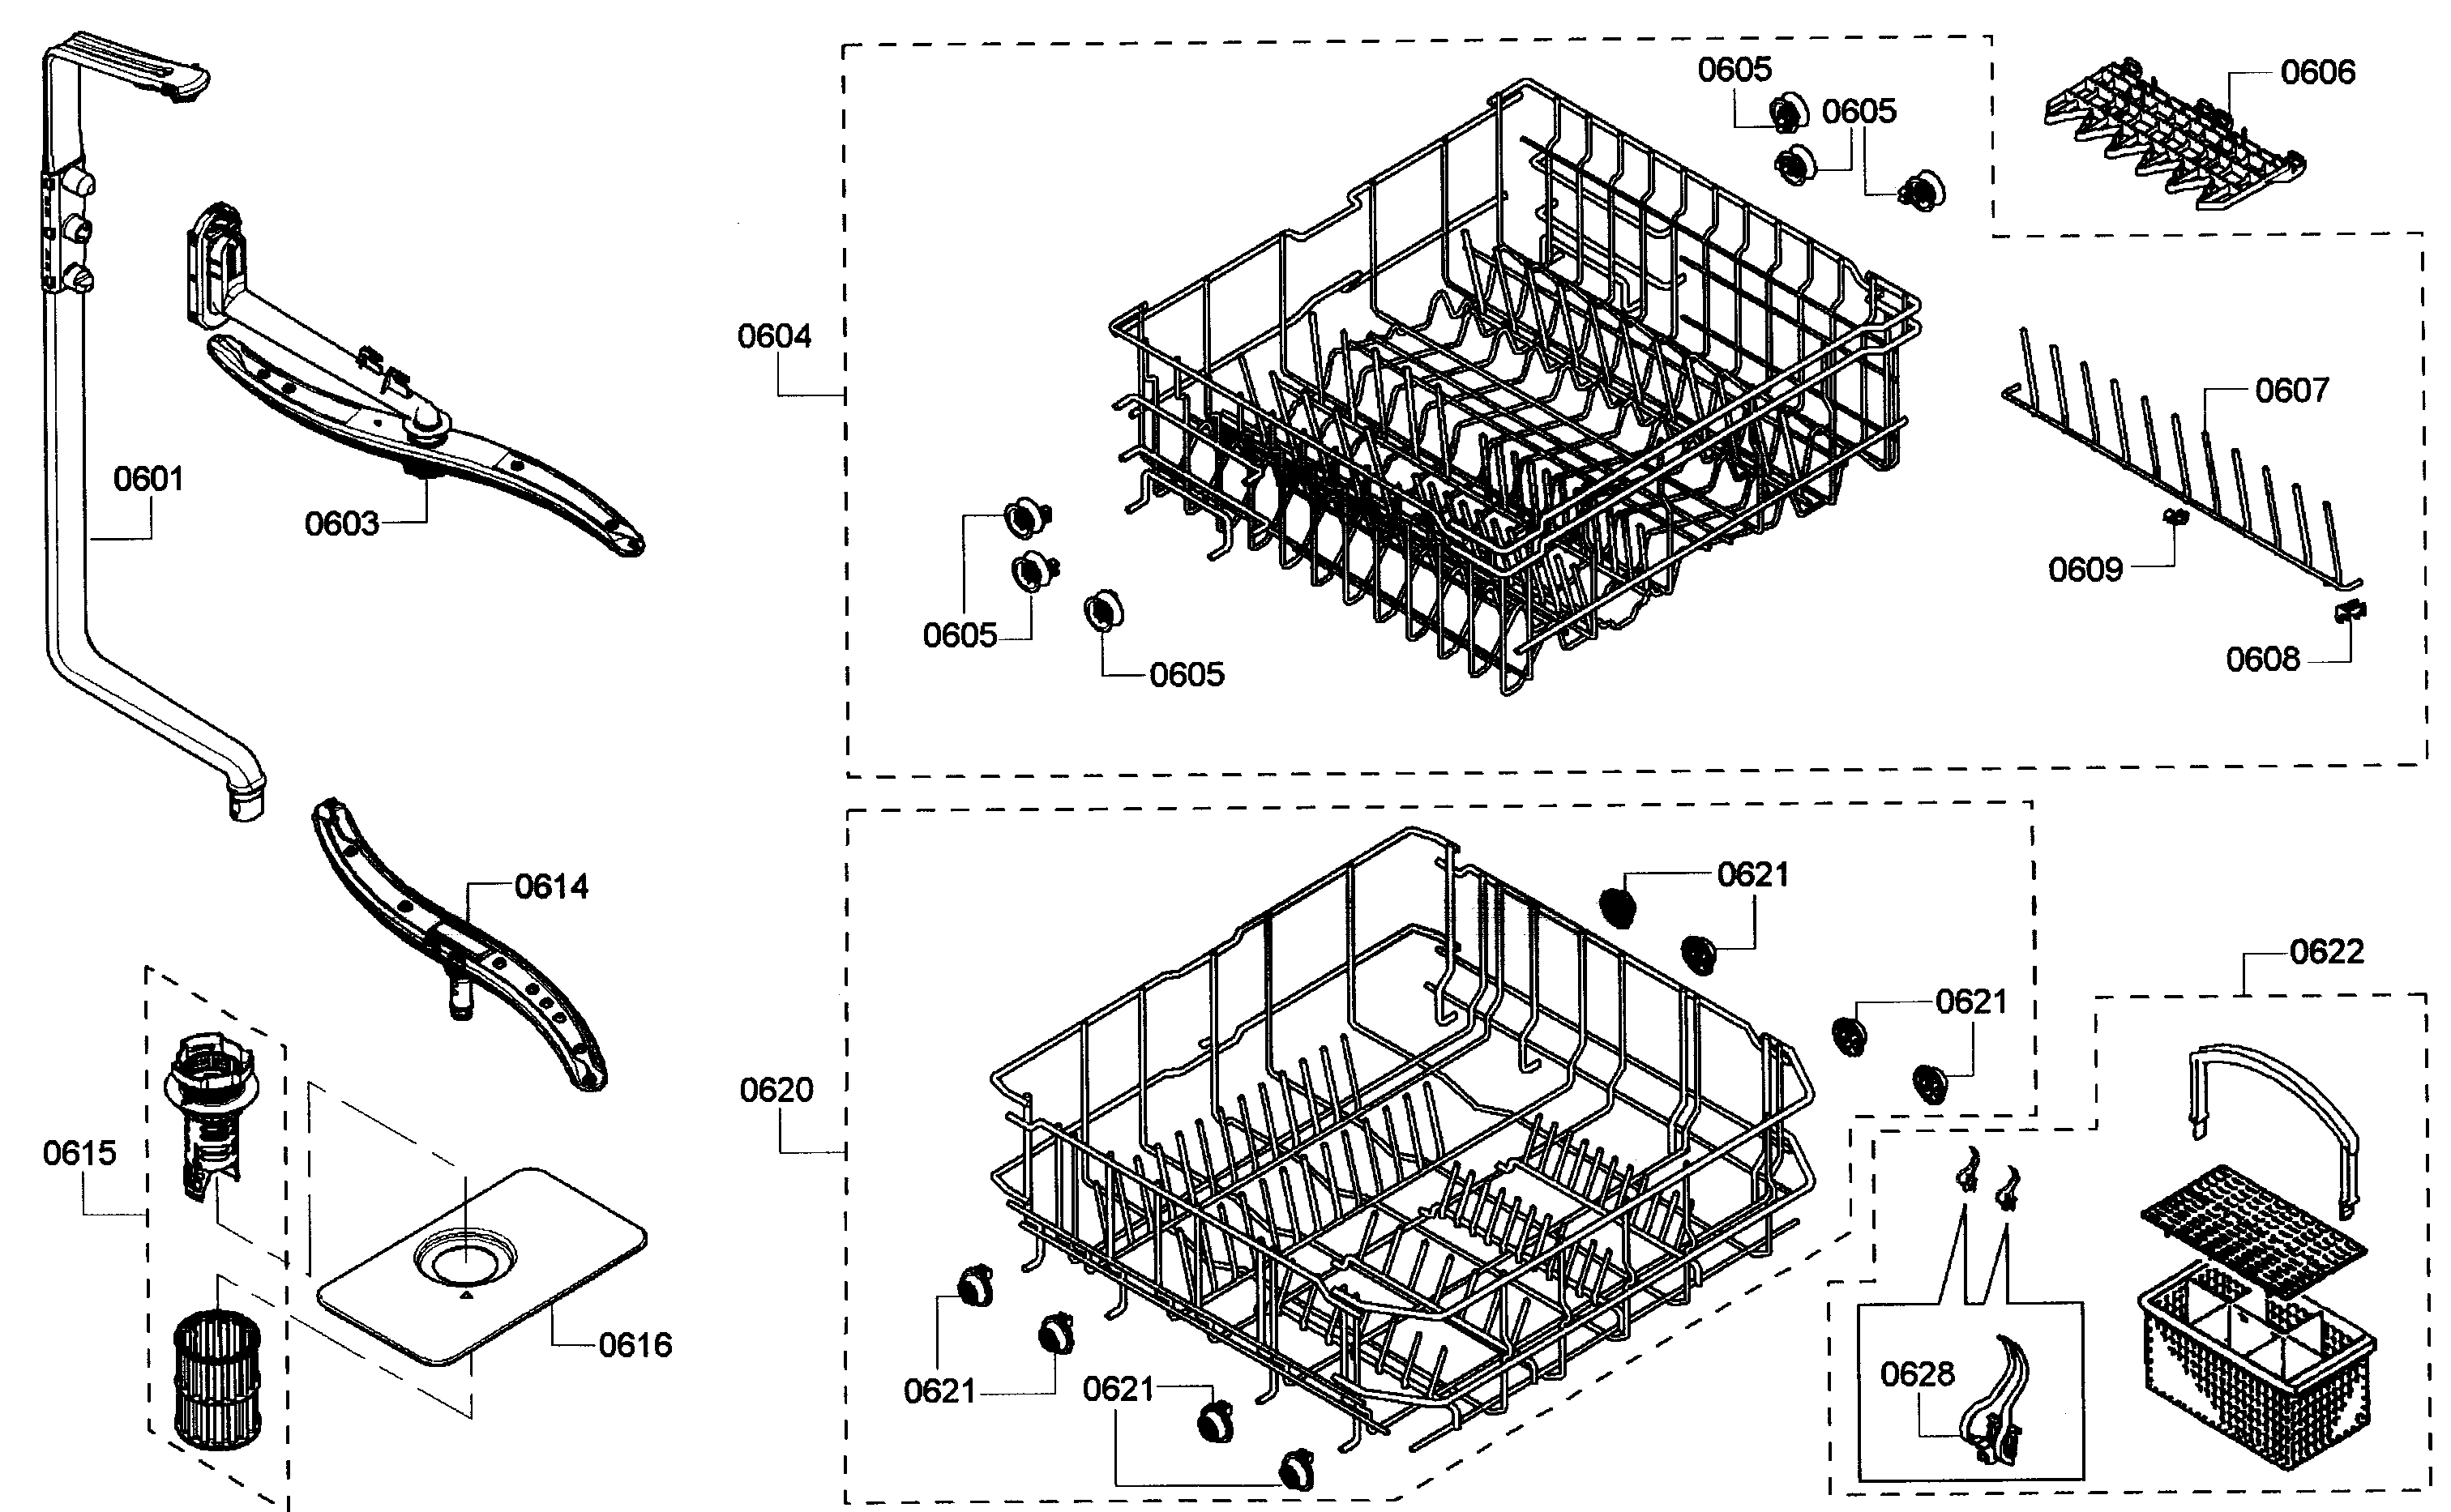 kenmore elite parts diagram wiring fuse symbol baskets and list for model 63013909010